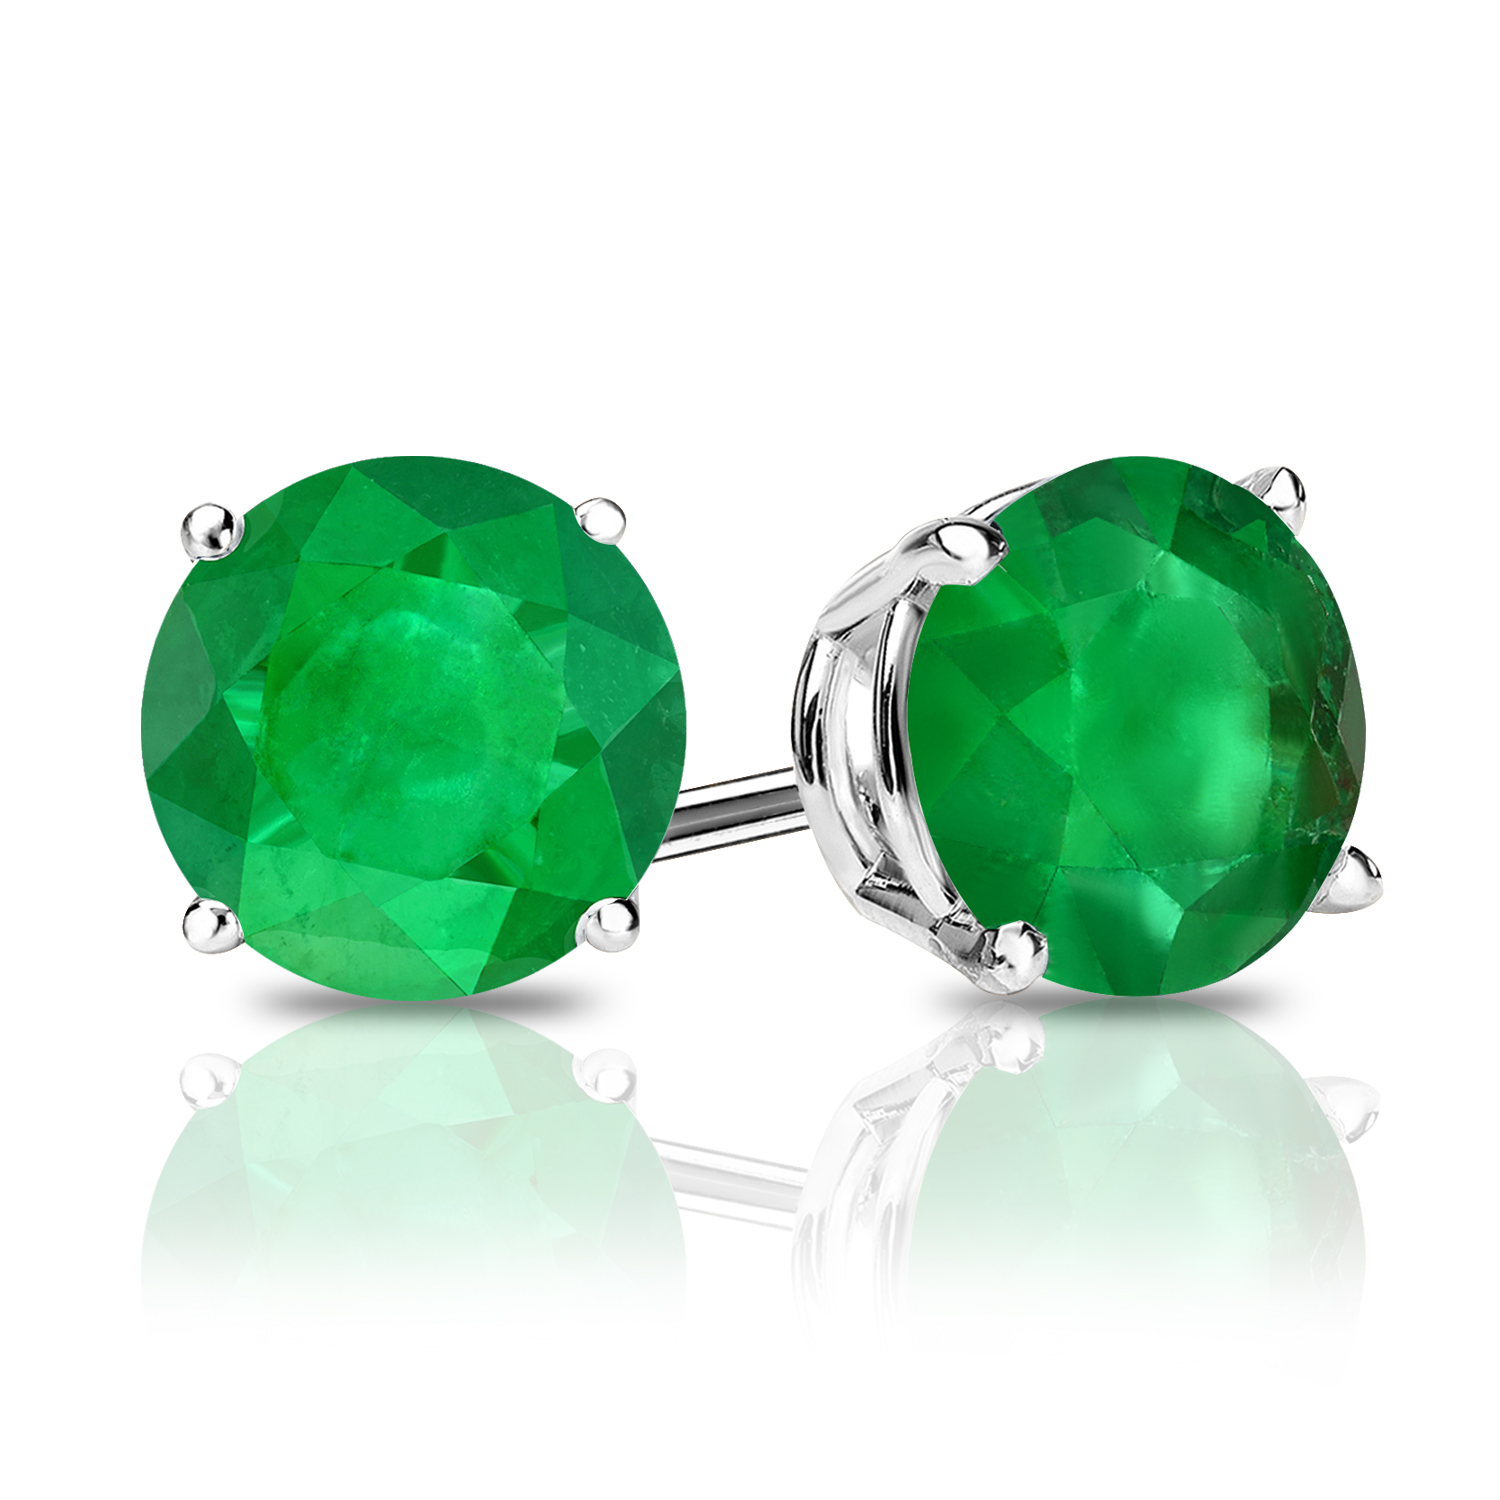 Certified 0.33 cttw Round Green Emerald Gemstone Stud Earrings in 14k White Gold 4-Prong Basket (Green, AAA)